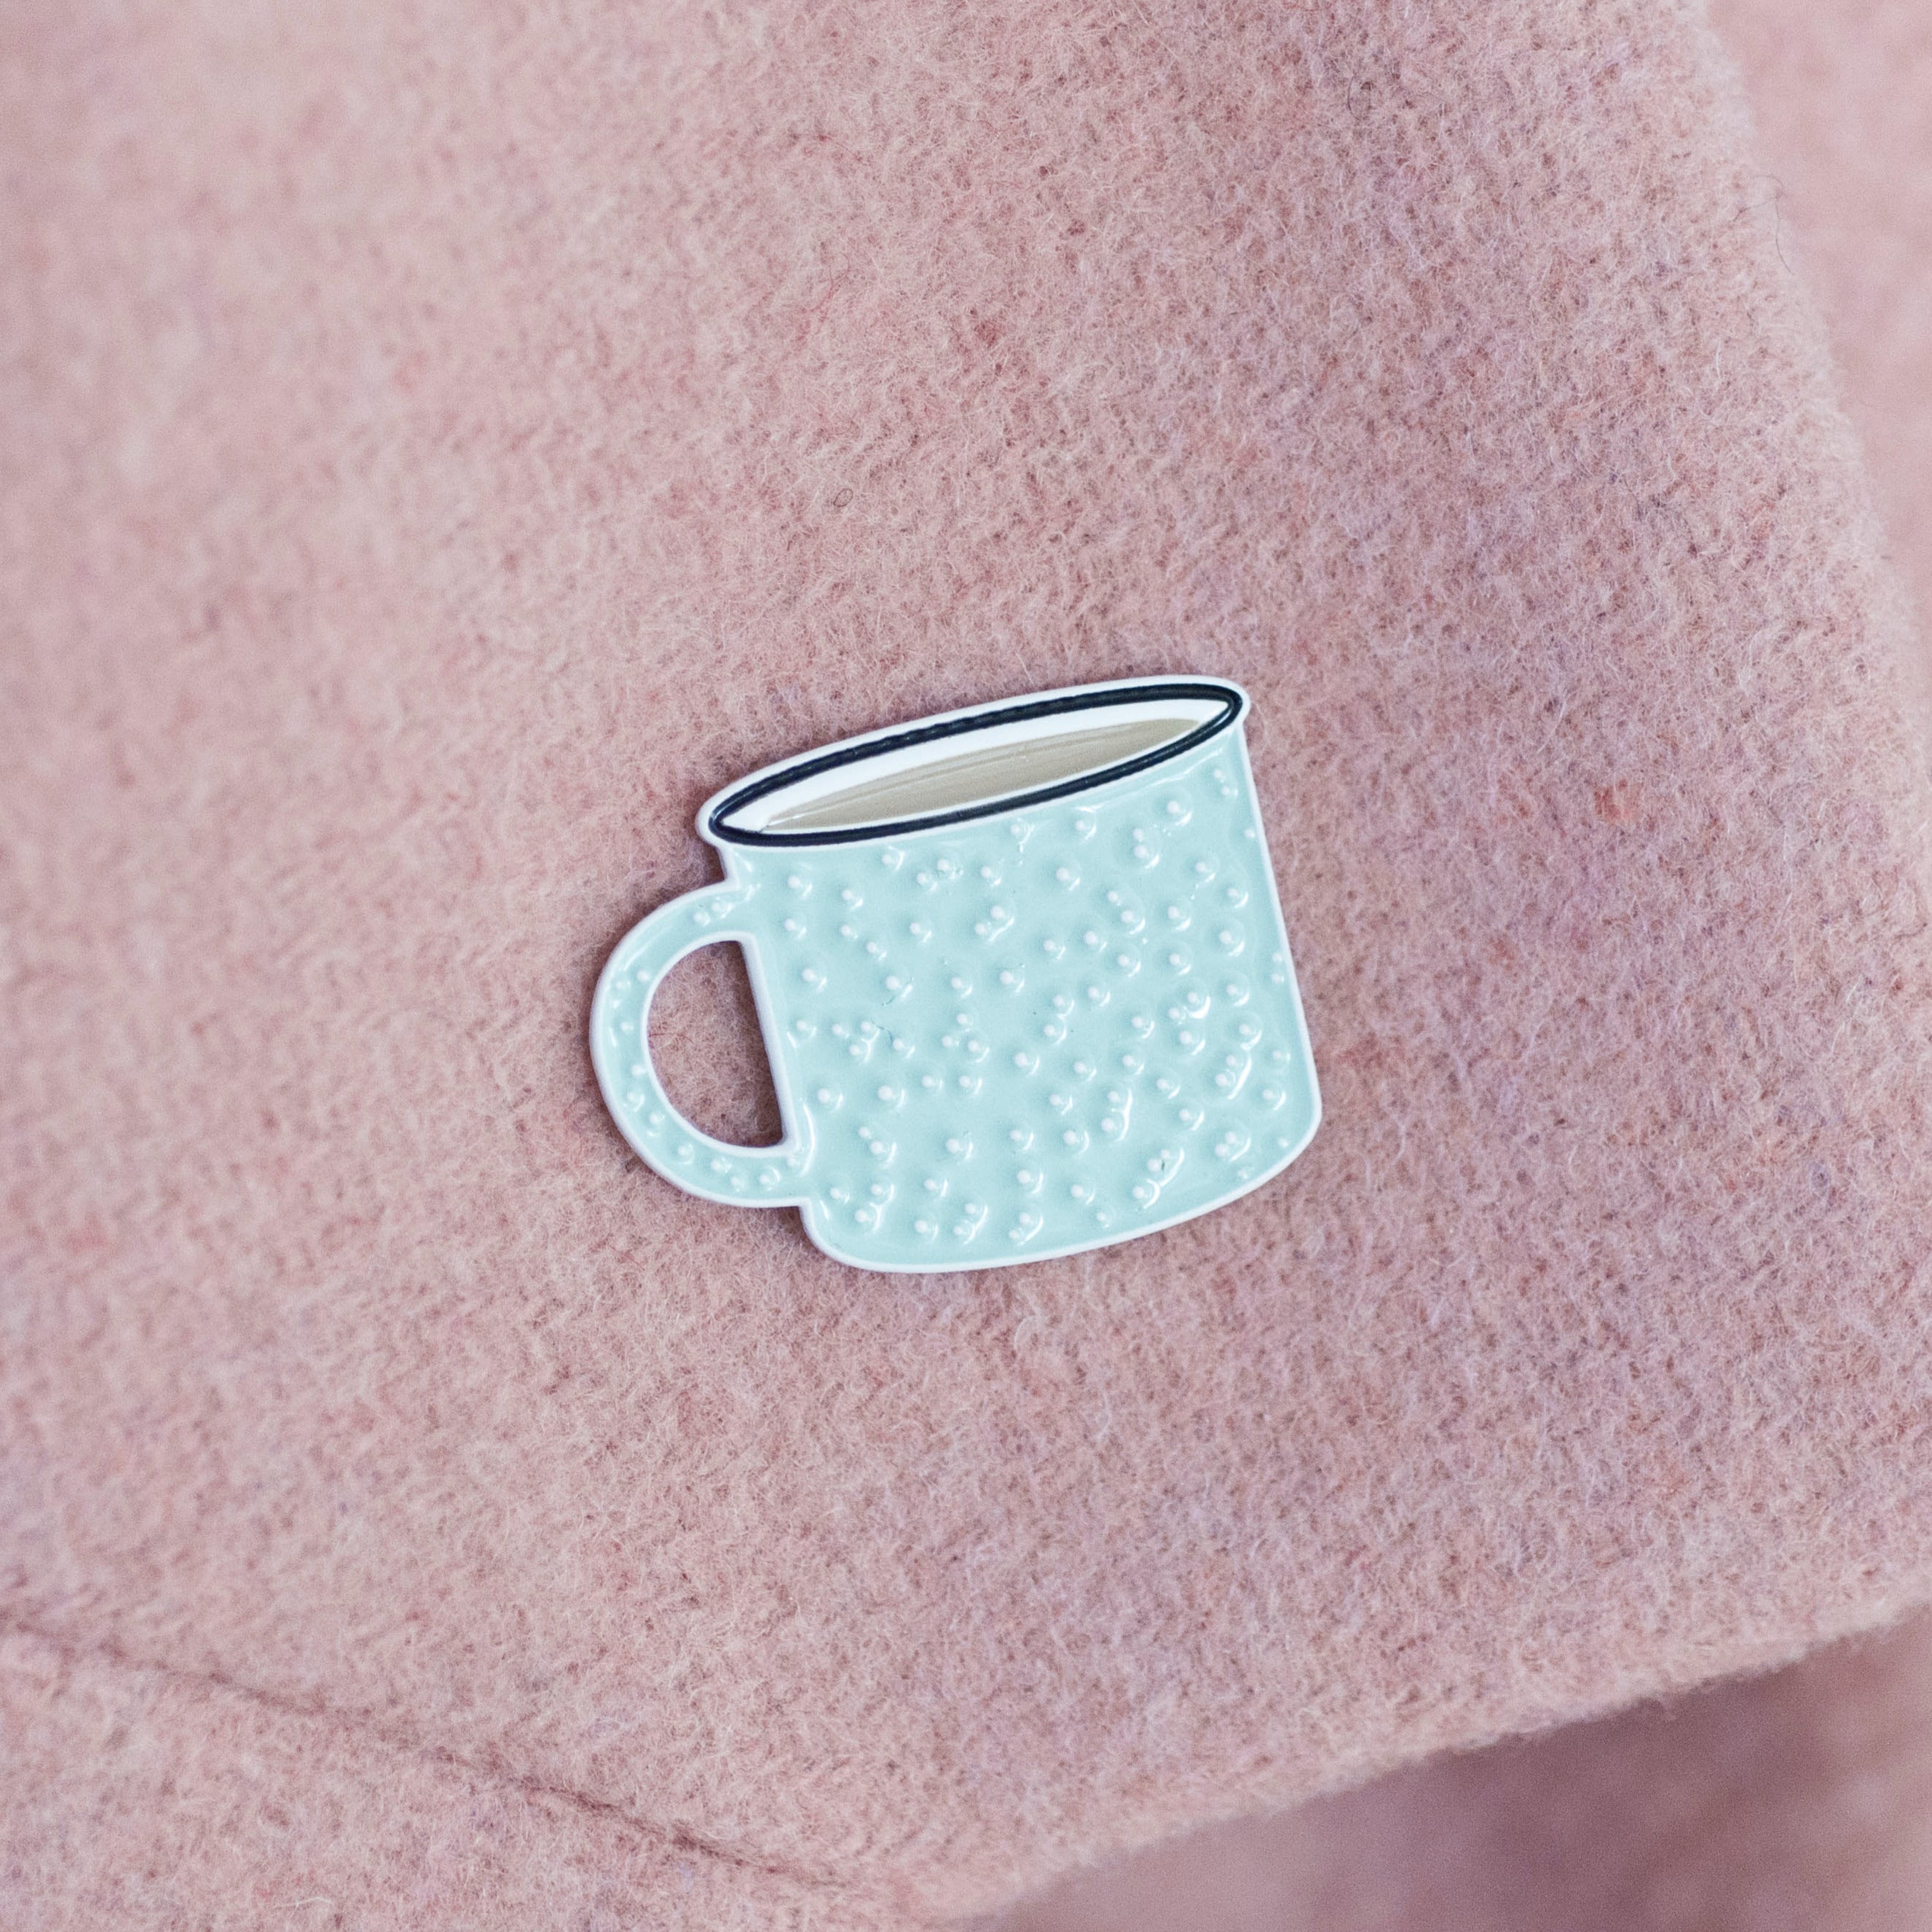 Mint coloured enamel pin in the shape of a camp style coffee mug.